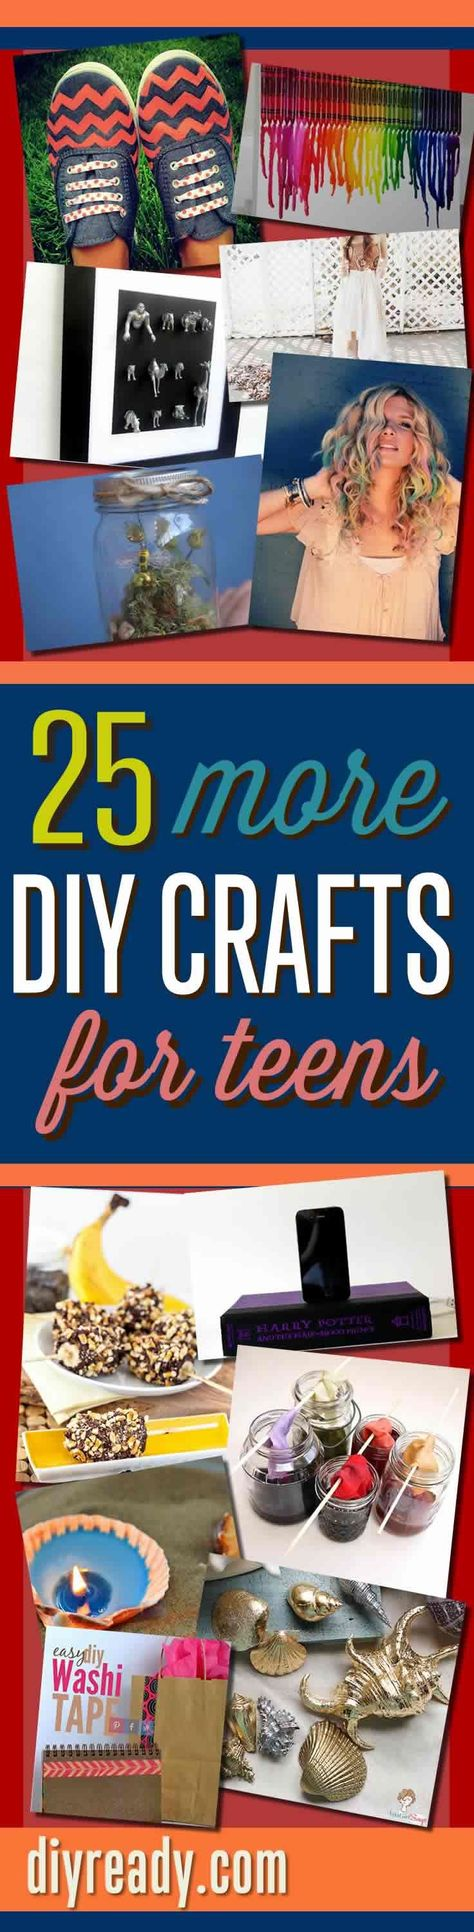 DIY Projects for Teens You'll Actually Want to Make | DIY Projects